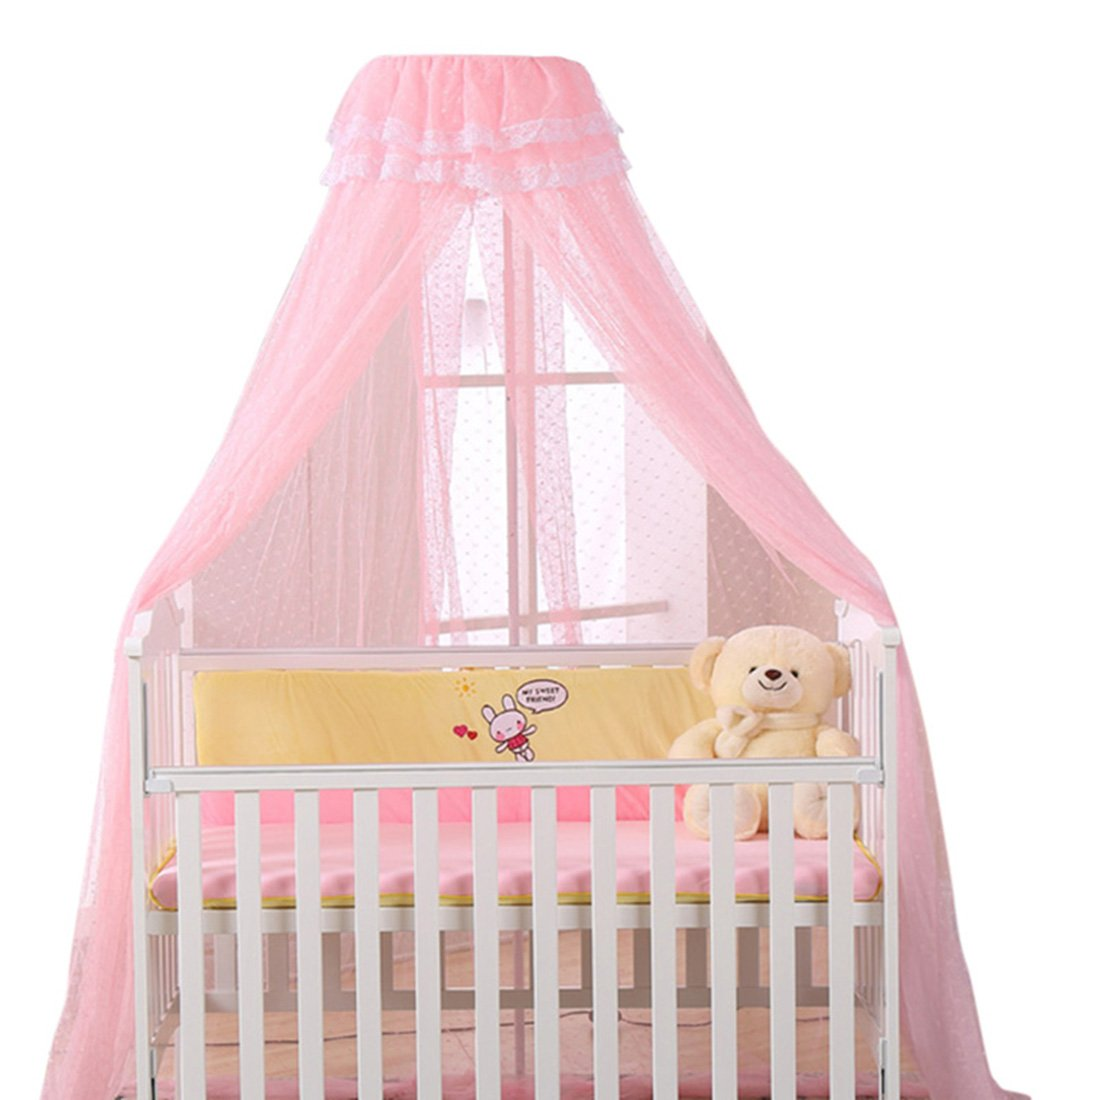 Jiyaru Baby Mosquito Net Lace Dome Nursery Netting Toddler Bed Crib Canopy Pink Net + Holder